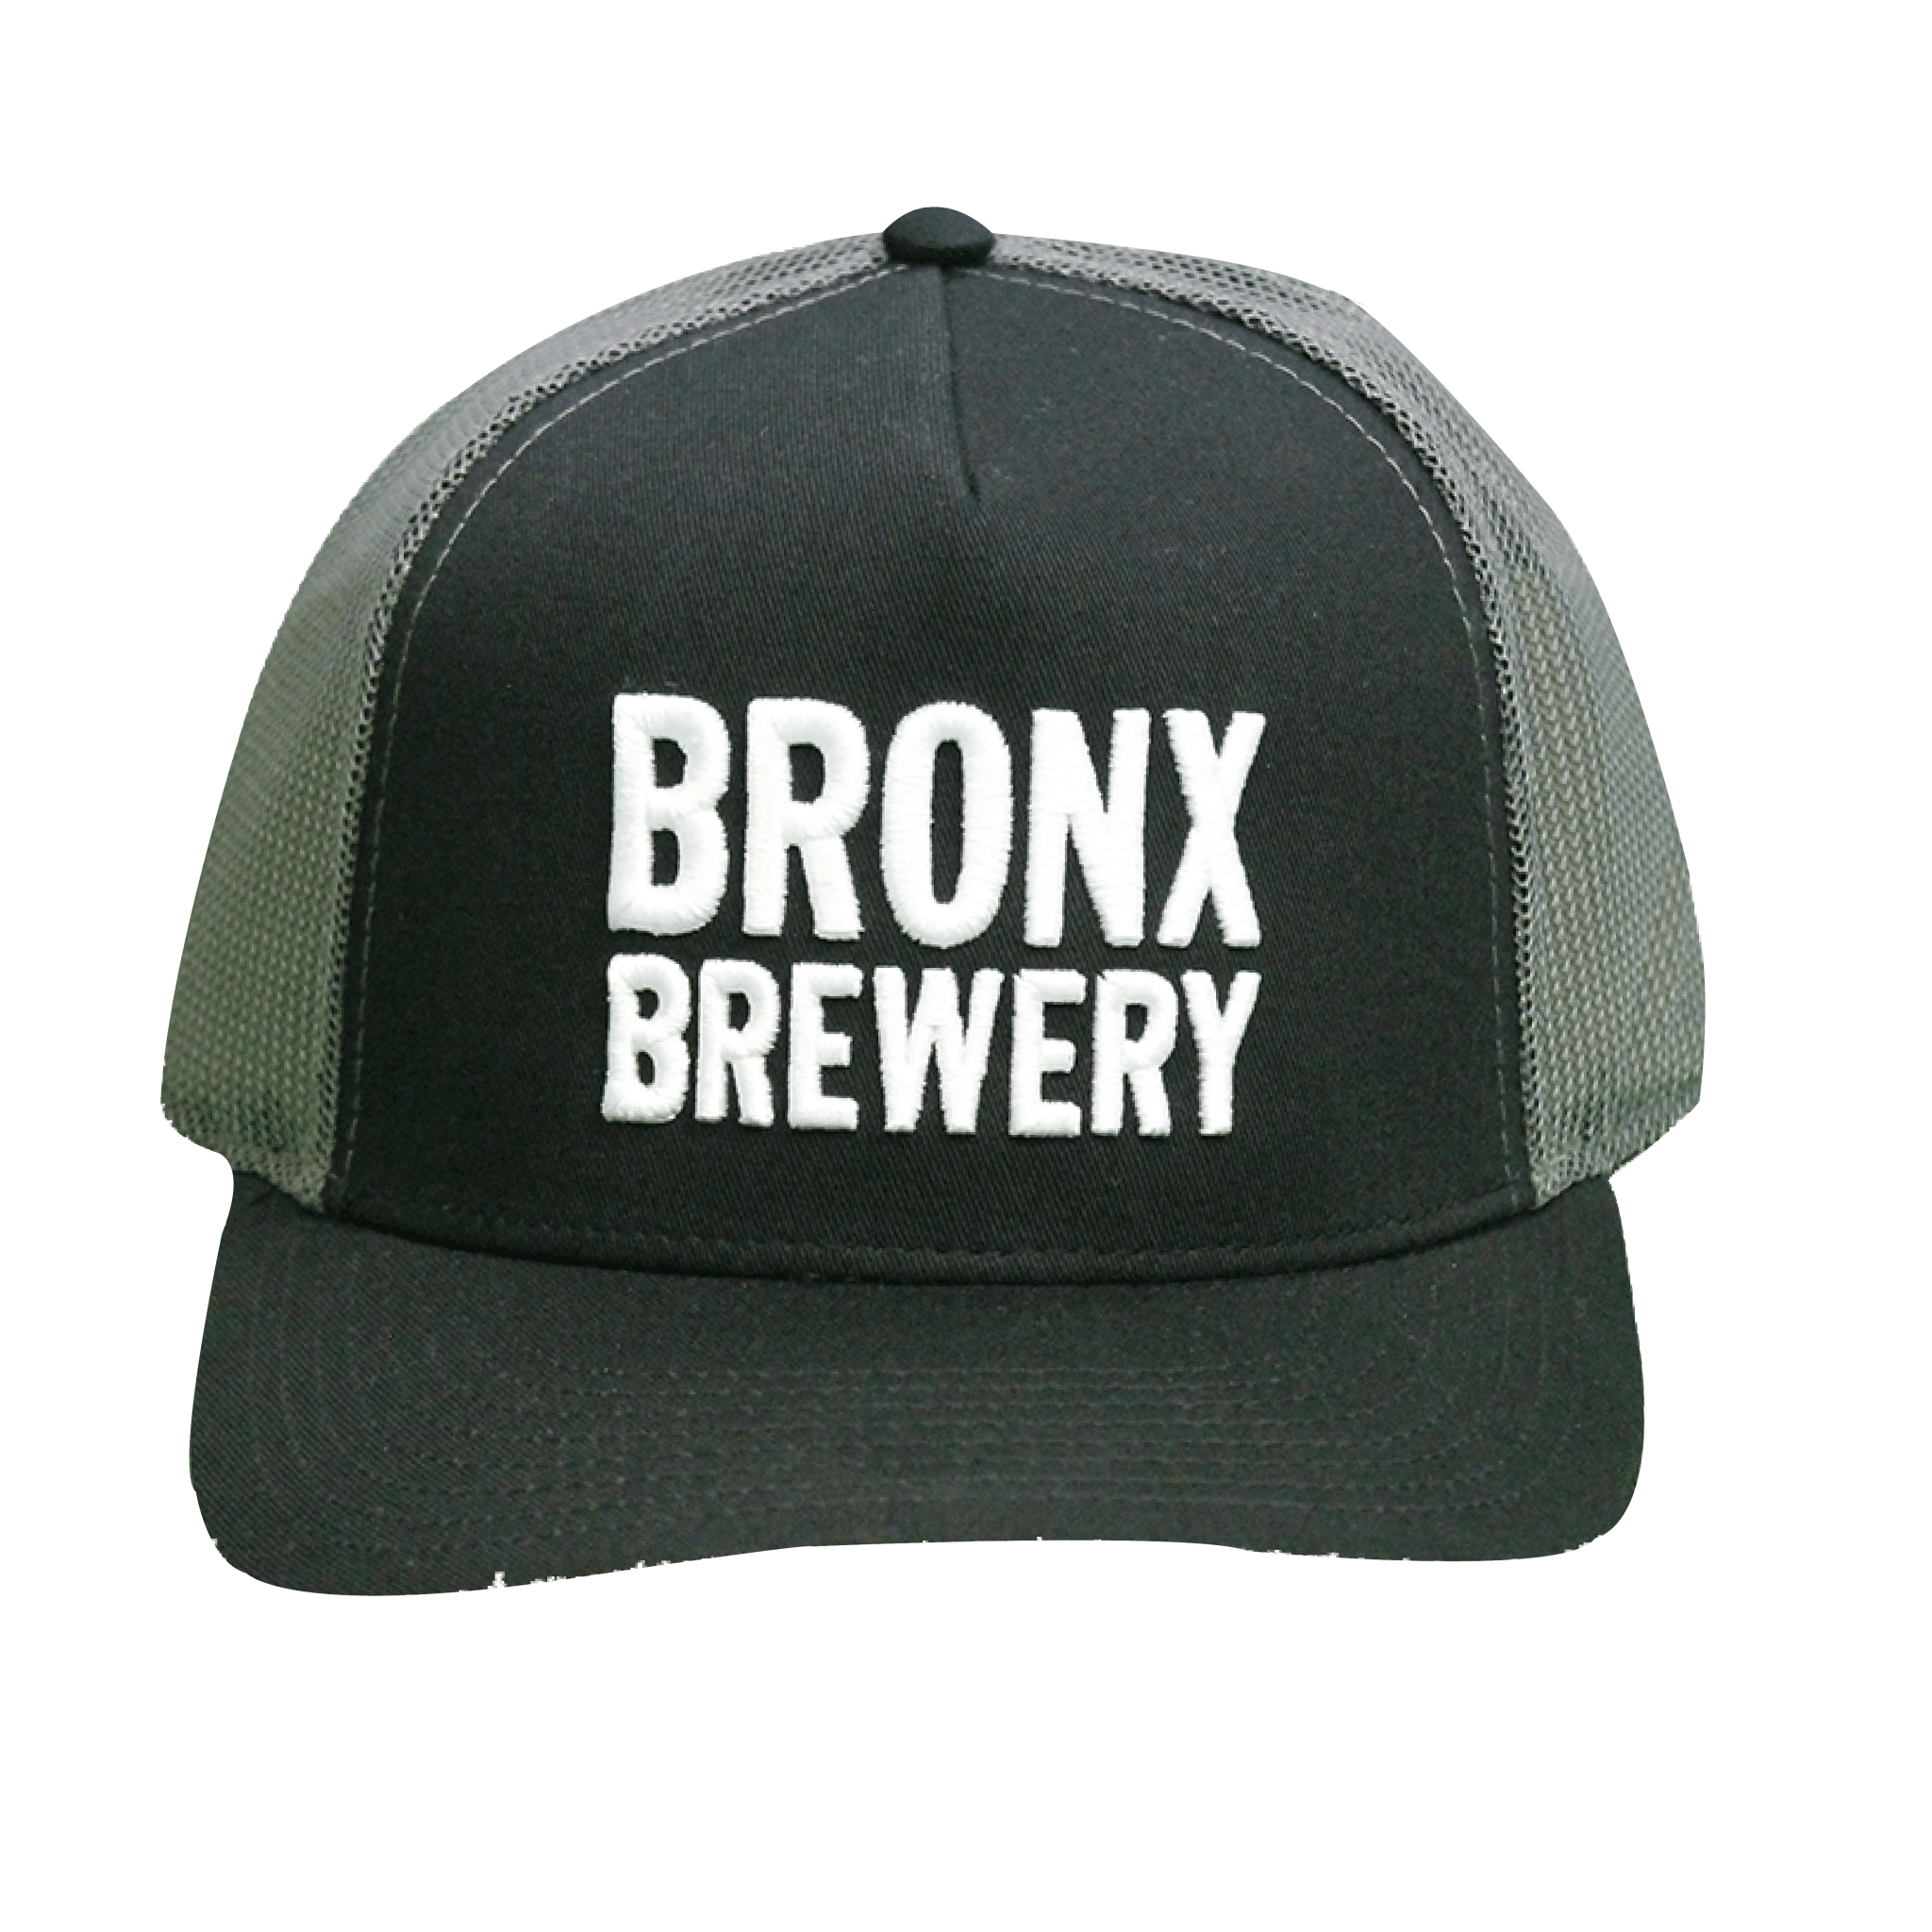 4830d73abe0 Bronx Brewery Snap-Back Hat